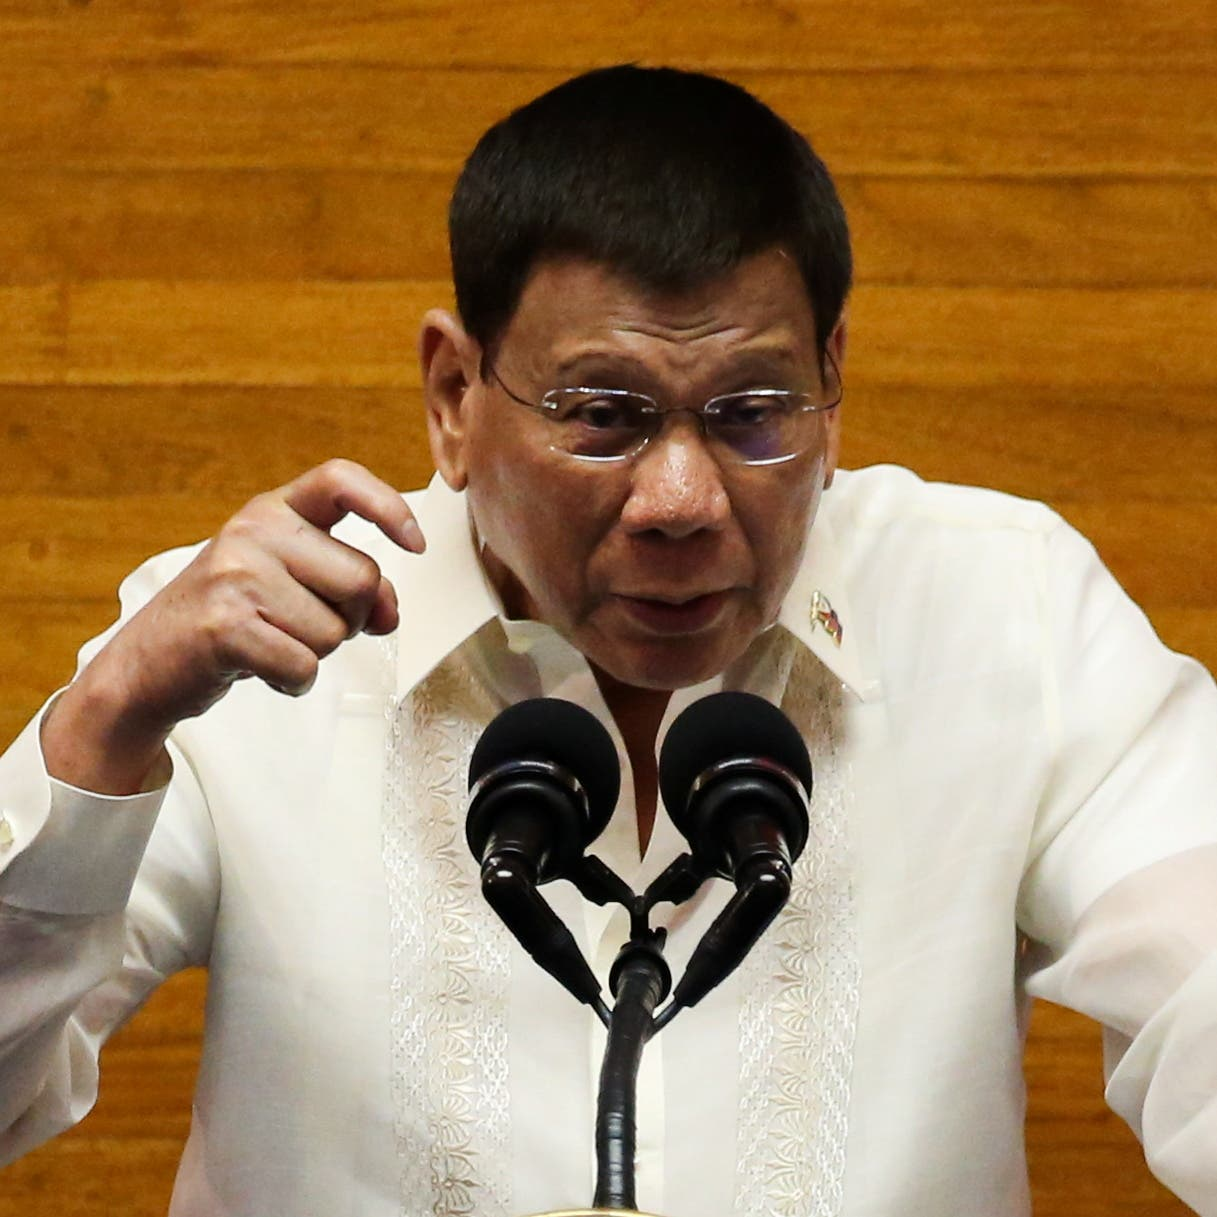 Duterte extends COVID-19 curbs in parts of Philippines